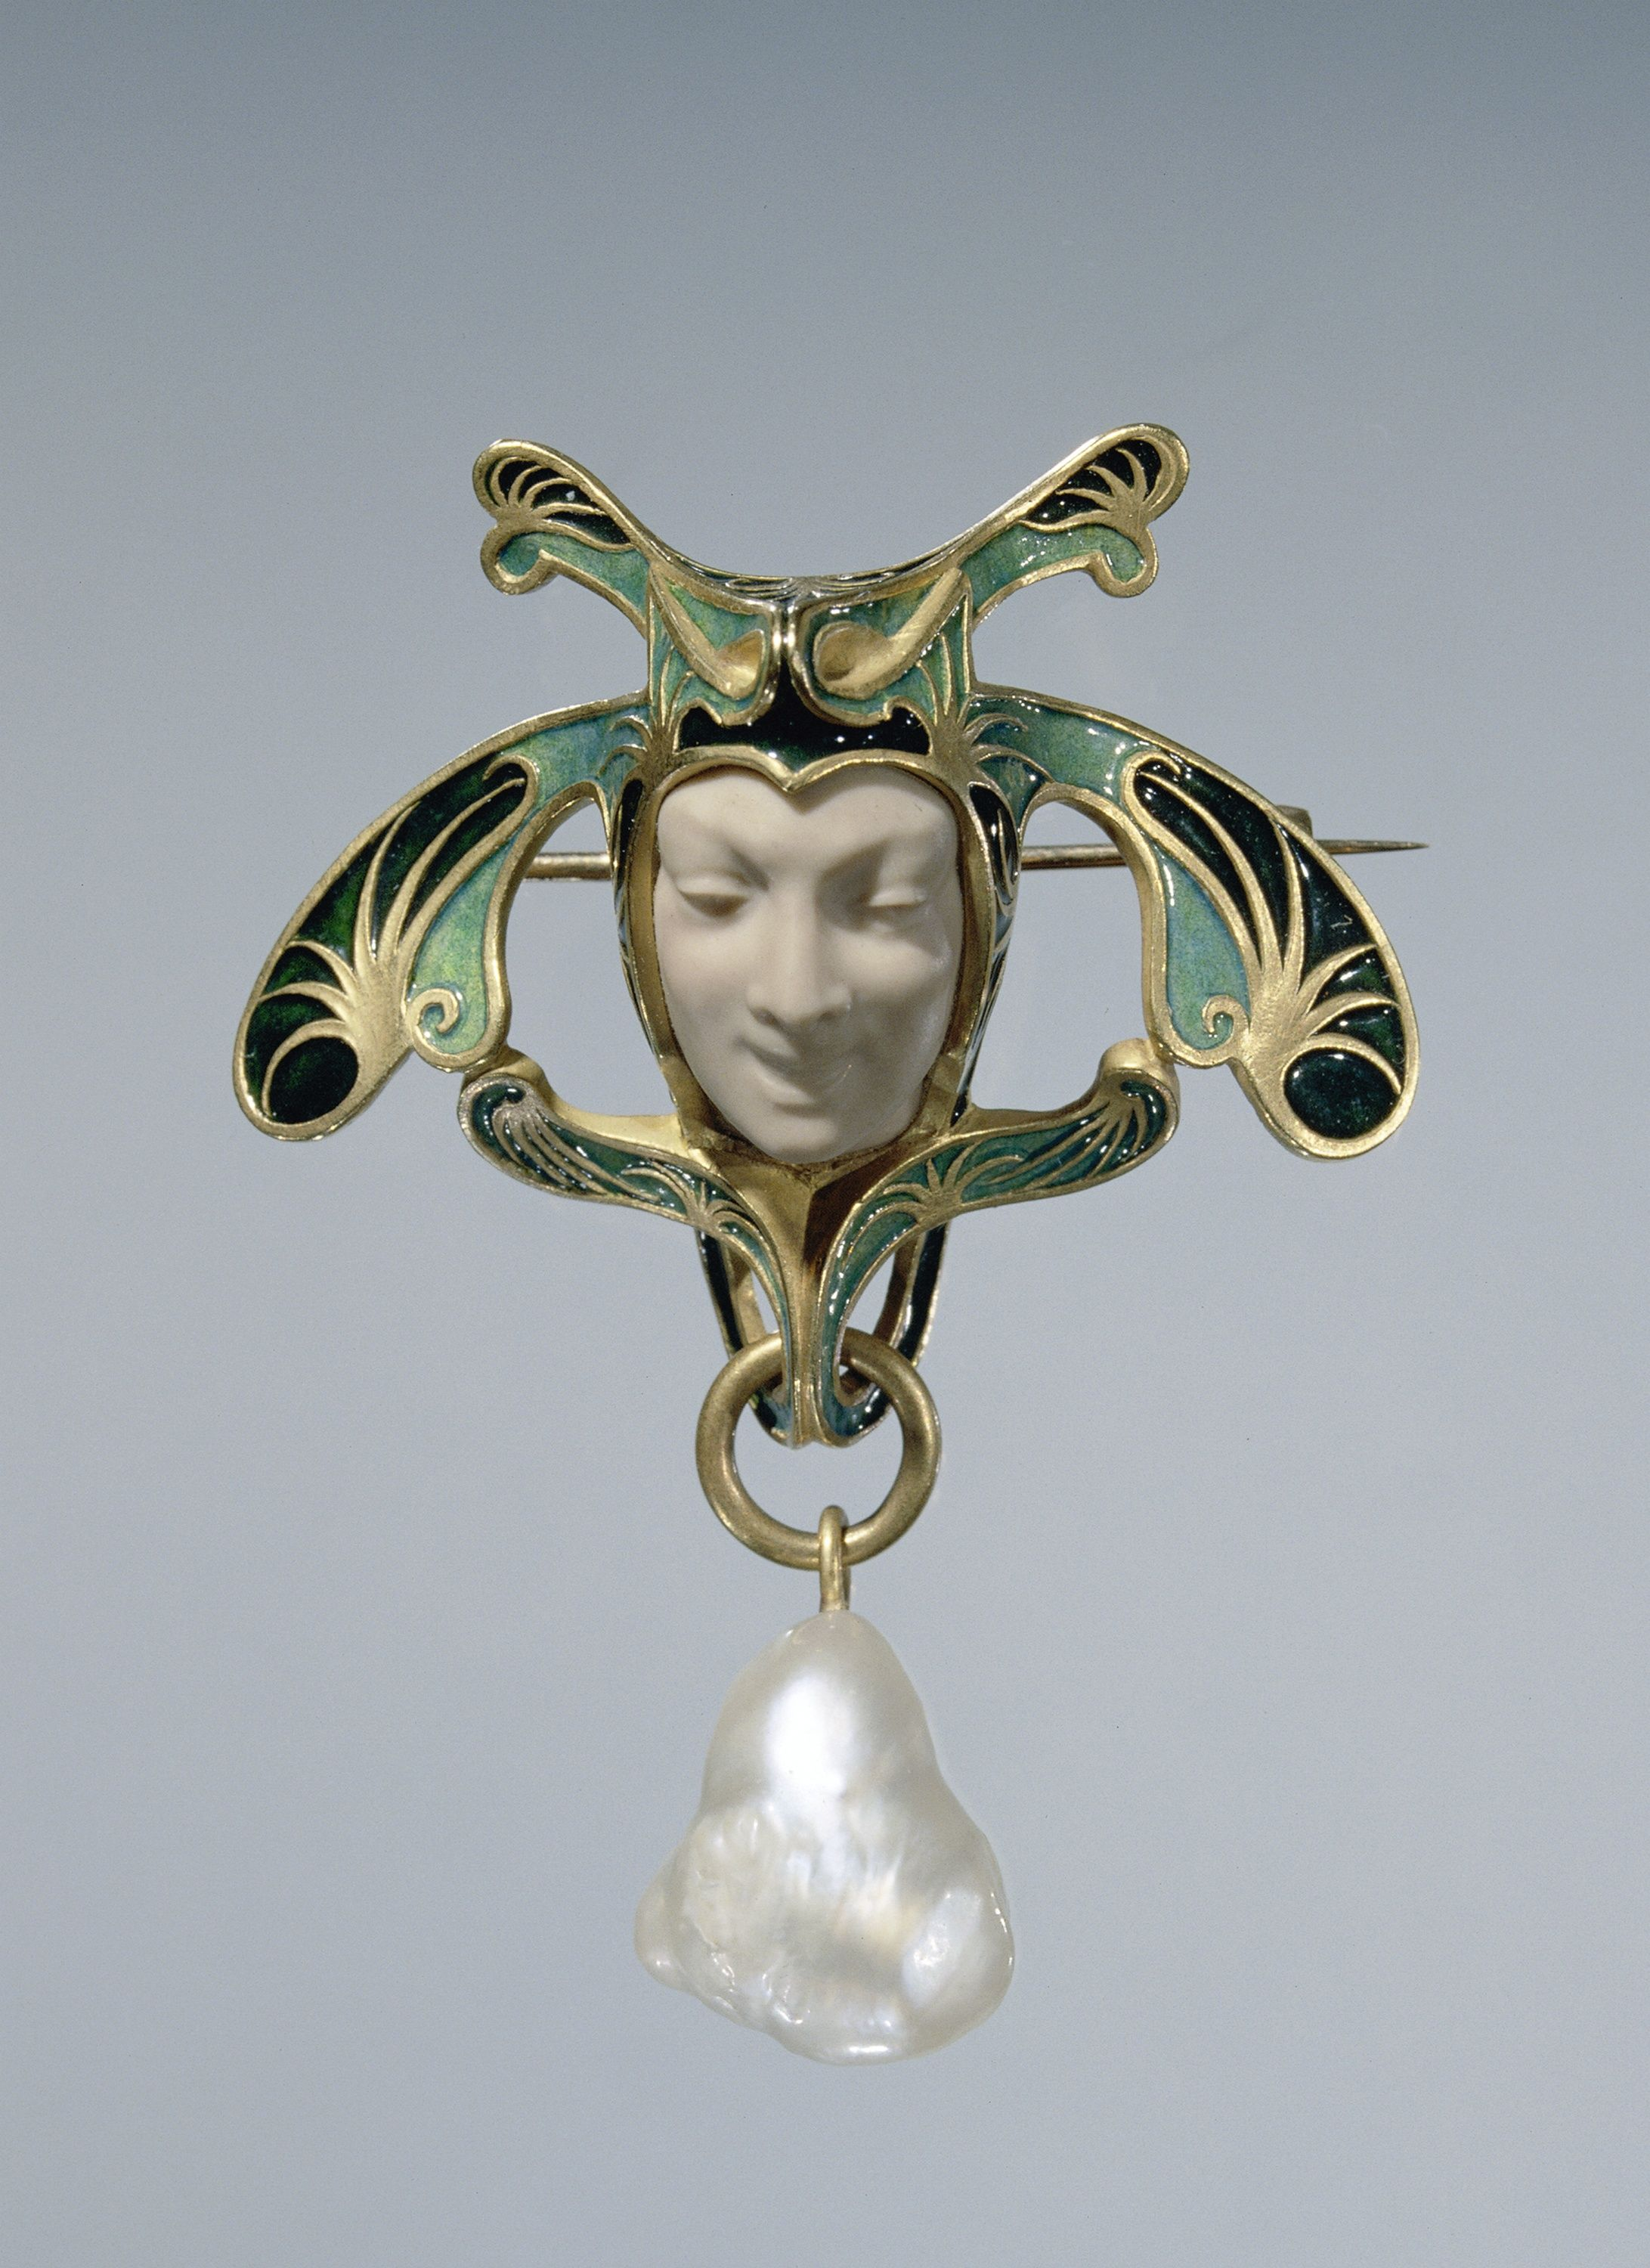 Gold and enameled brooch by René Lalique, circa 1897-1899